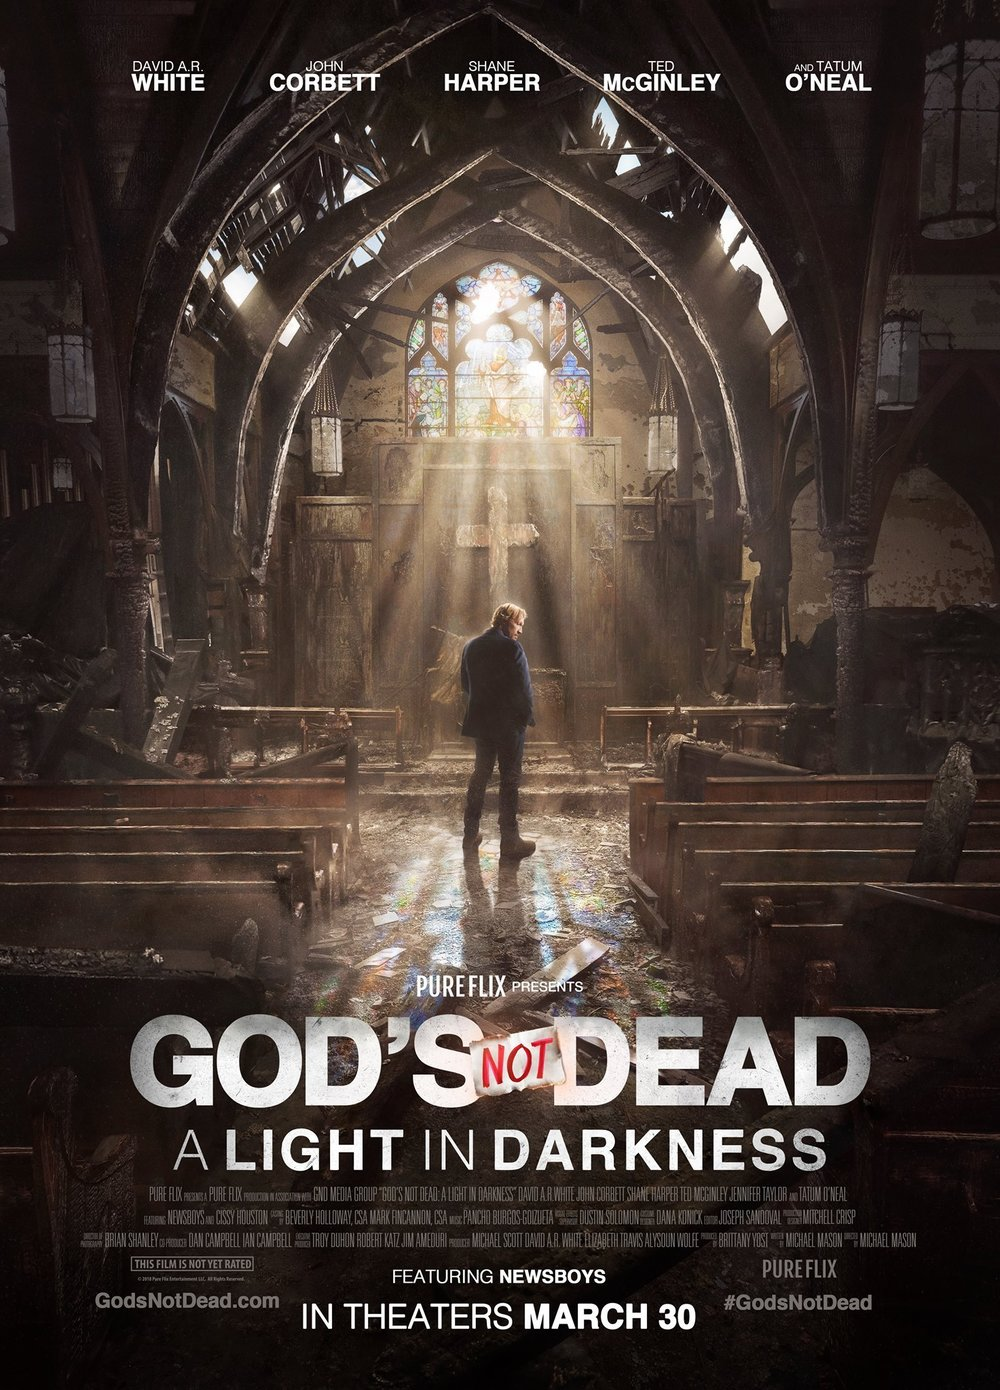 God's Not Dead: A Light in the Darkness (2018) - Directed by: Michael MasonStarring: David A.R. White, John Corbett, Shane HarperRunning Time: 1h 45mTMM Score: 1 star out of 5STRENGTHS: MessageWEAKNESSES: Pacing, Characters, Acting, Visual FX